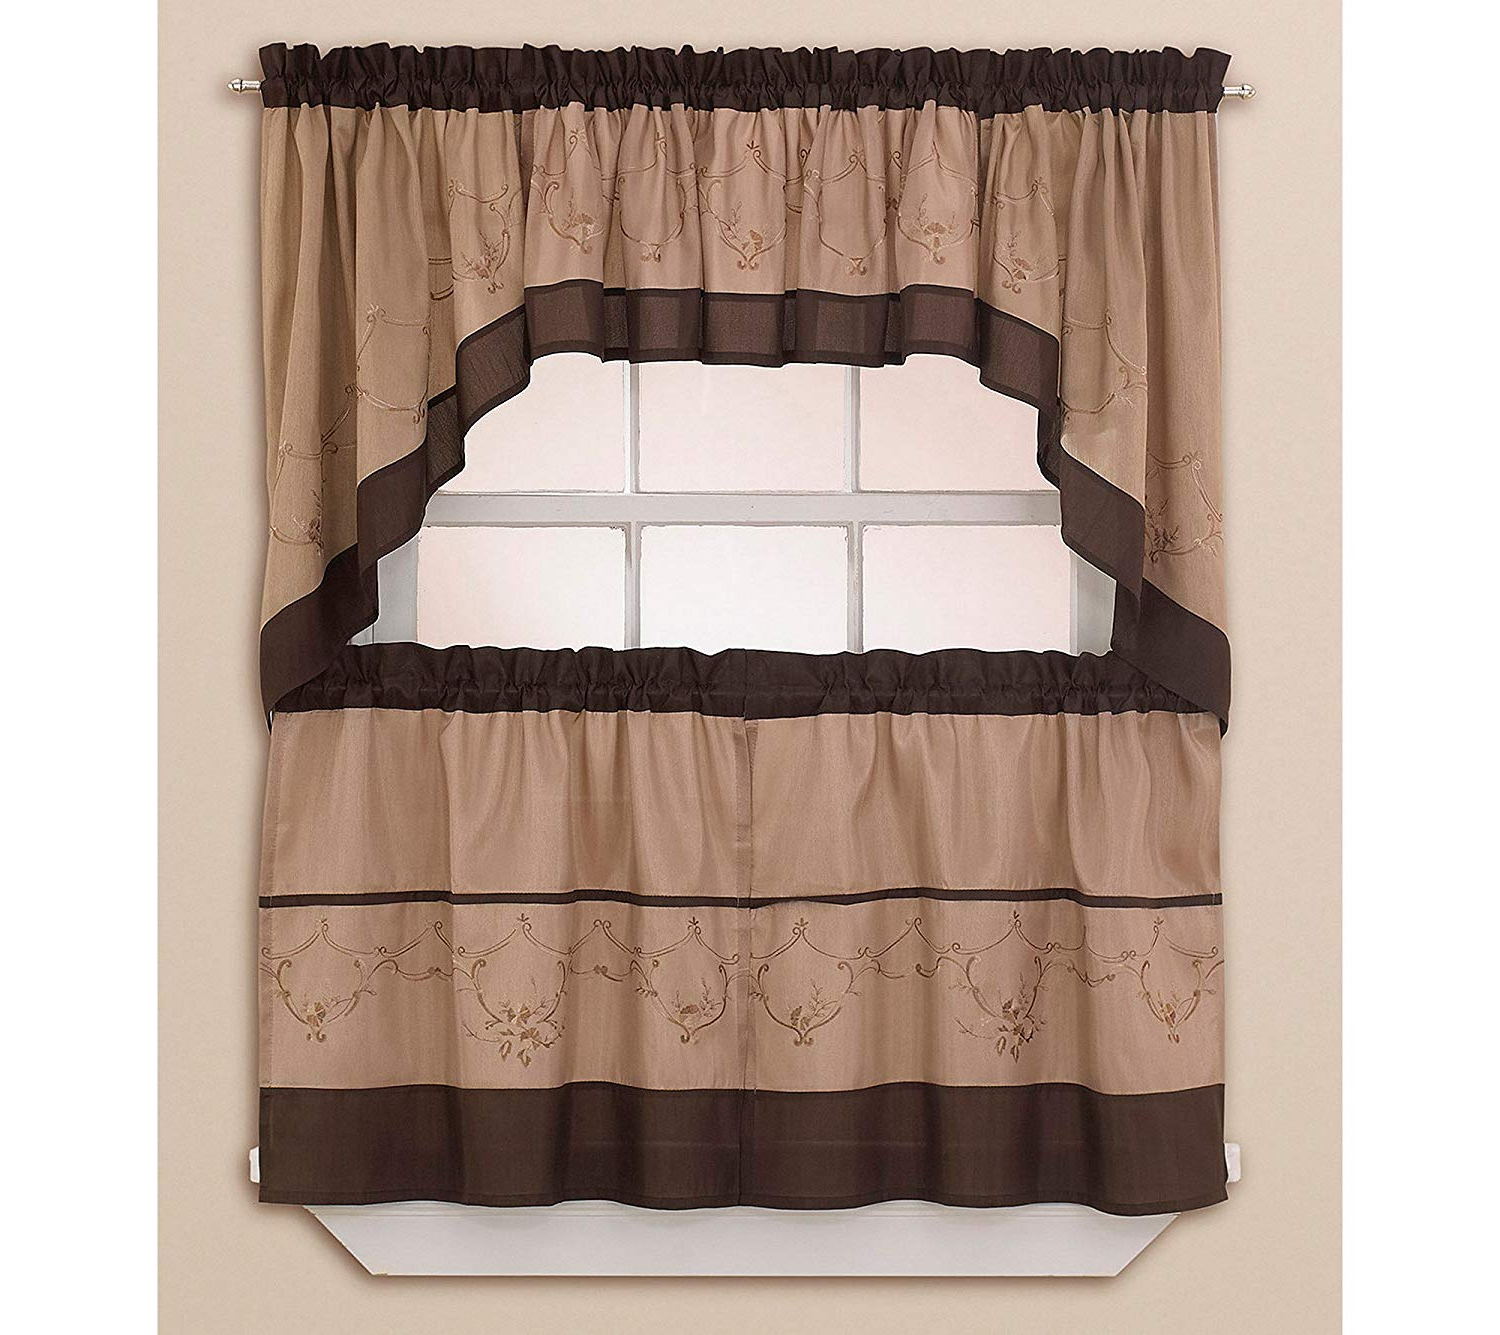 Amazon: Grace Tailored Tier Curtain Panel, Valance Chf With Regard To 2021 Tailored Valance And Tier Curtains (View 5 of 20)